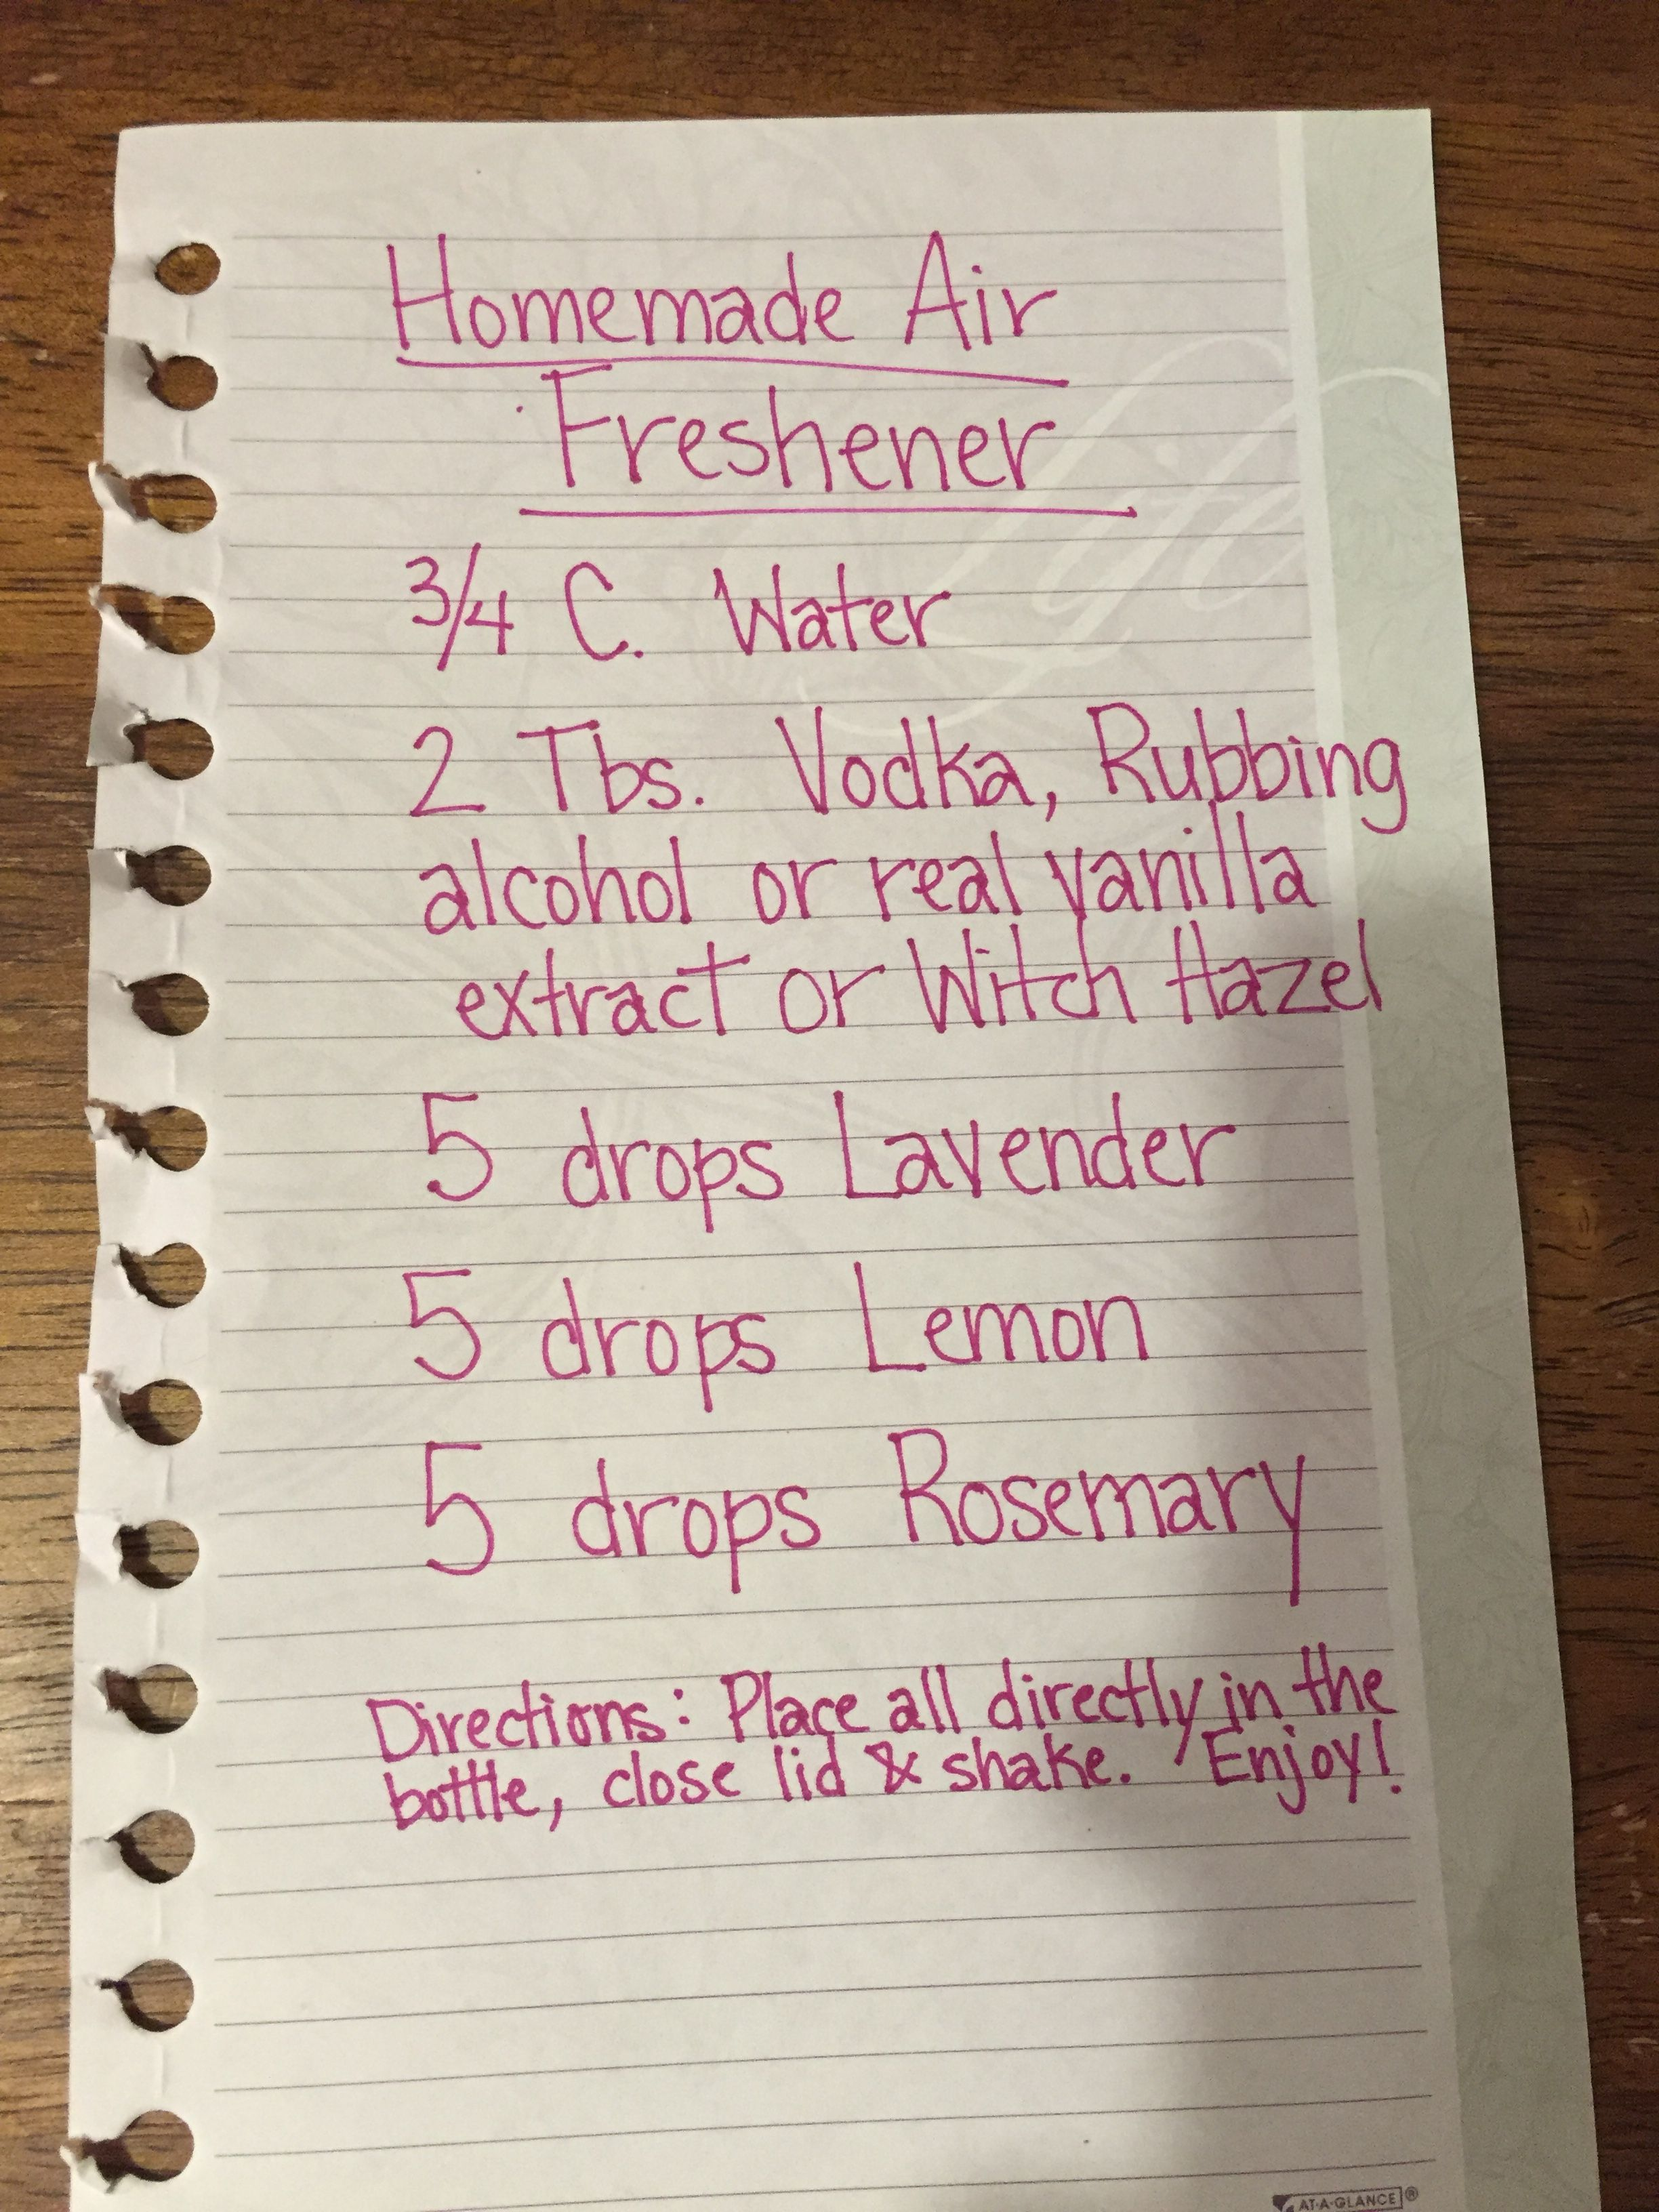 Pin by Amy Dutton on DōTERRA Homemade air freshener